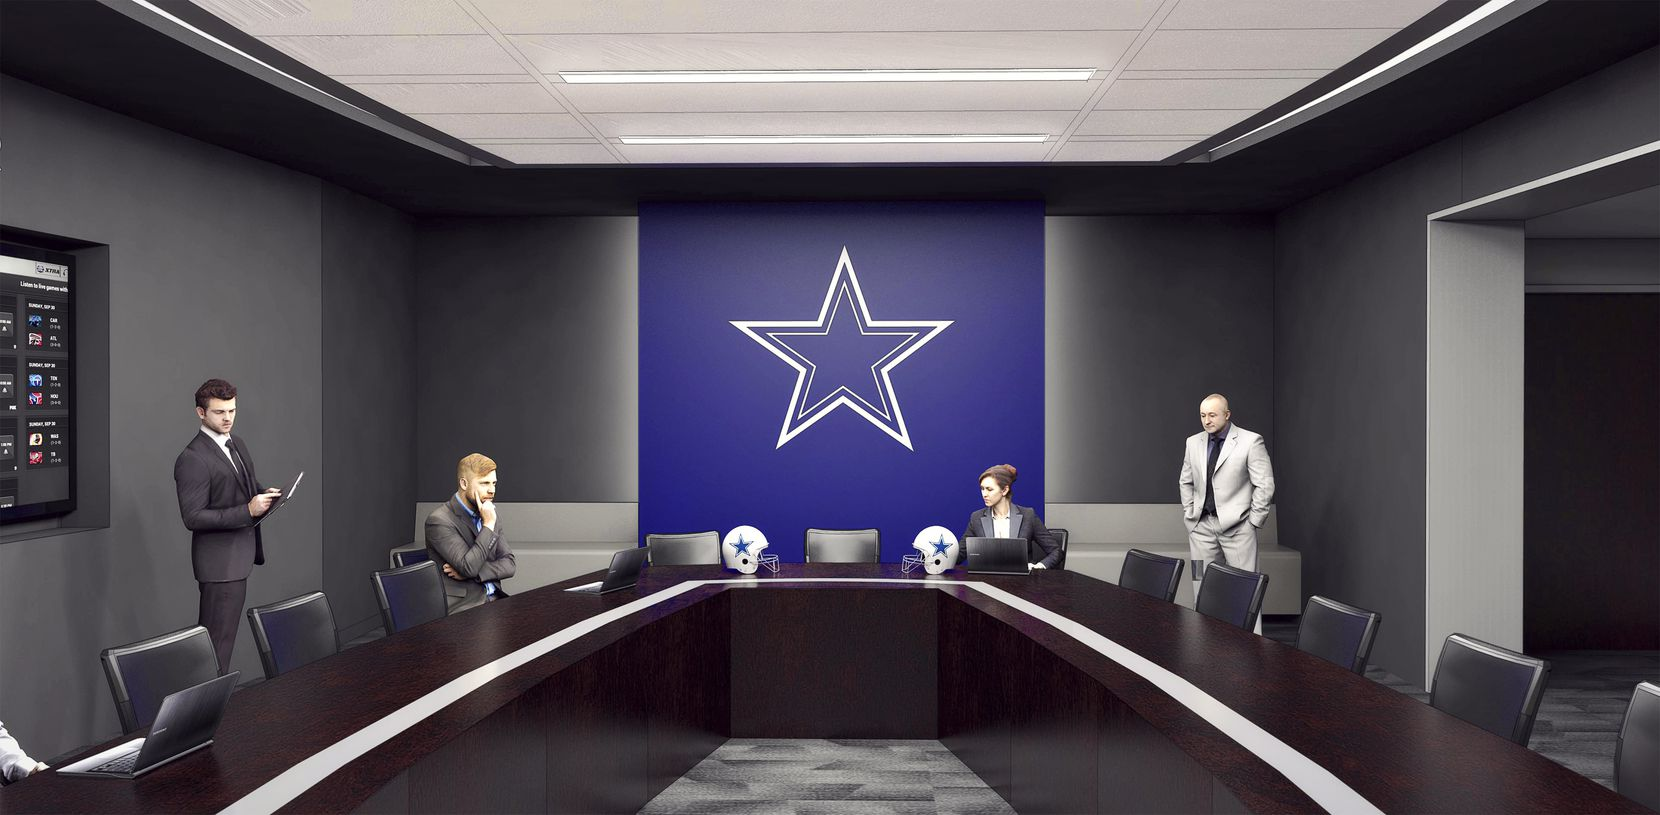 An artist's rendering of what the Cowboys' new digital war room will look like at their new headquarters, The Star in Frisco.